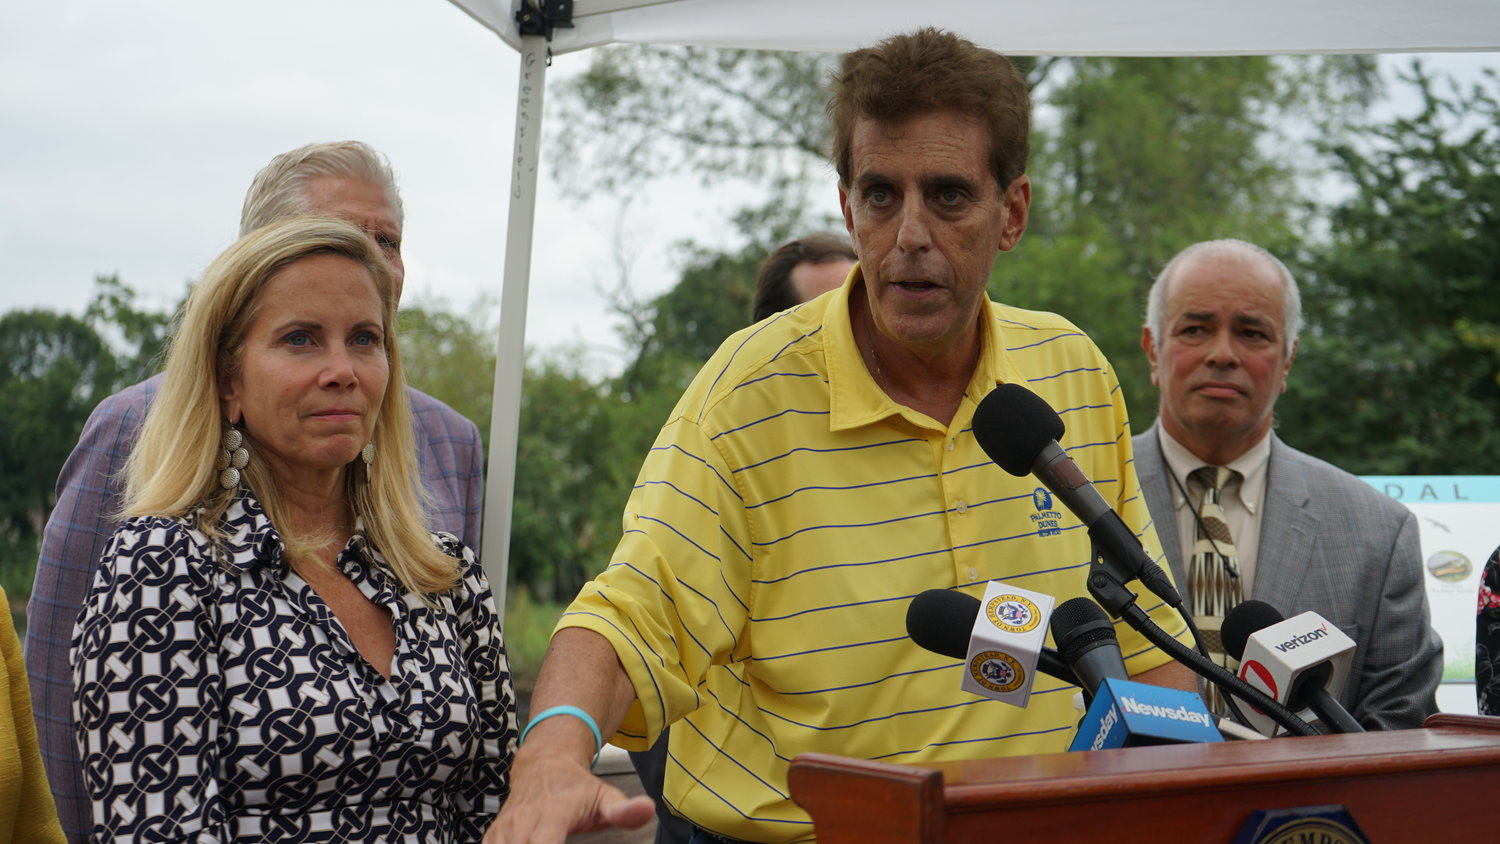 Mill Brook Civic Association Executive Vice President Bob Brown worked with the Governor's Office of Storm Recovery to help design the new flood prevention measures. His house was flooded with four feet of water during Hurricane Sandy. With him was Town Supervisor Laura Gillen, and Marc Tenzer who served as chairman of GOSR's community reconstruction committee for South Valley Stream.